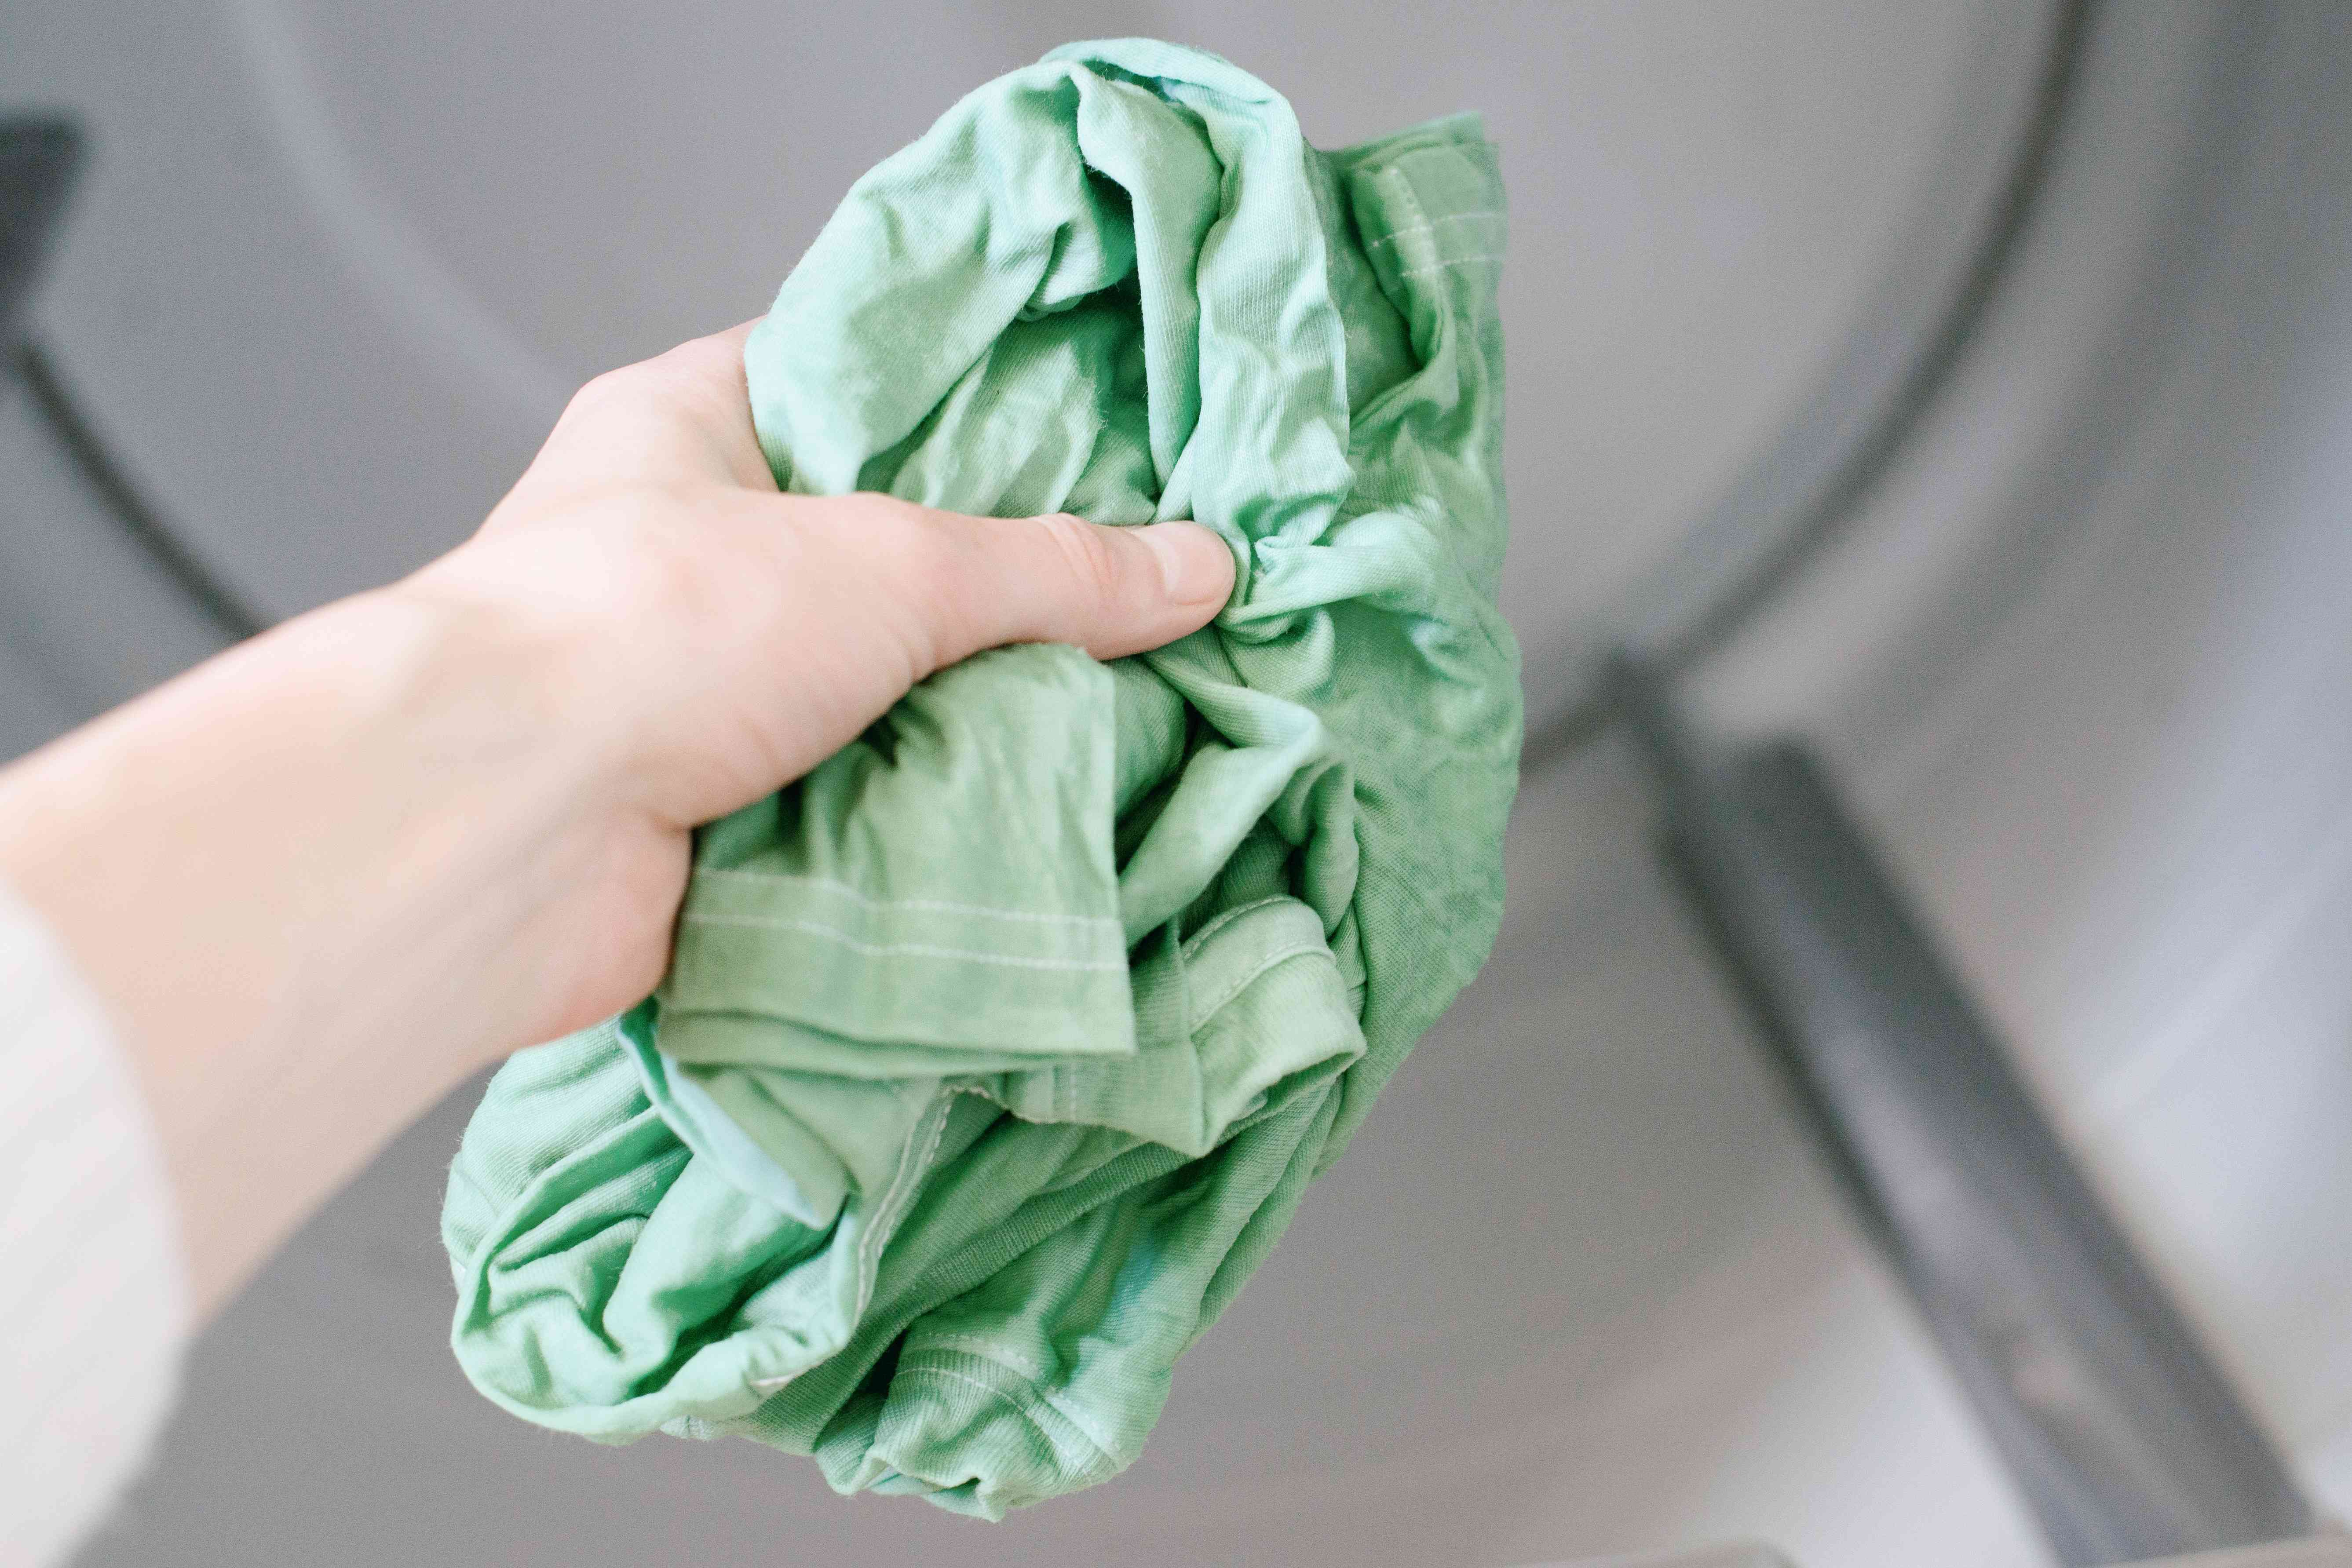 adding dyed clothing to the dryer